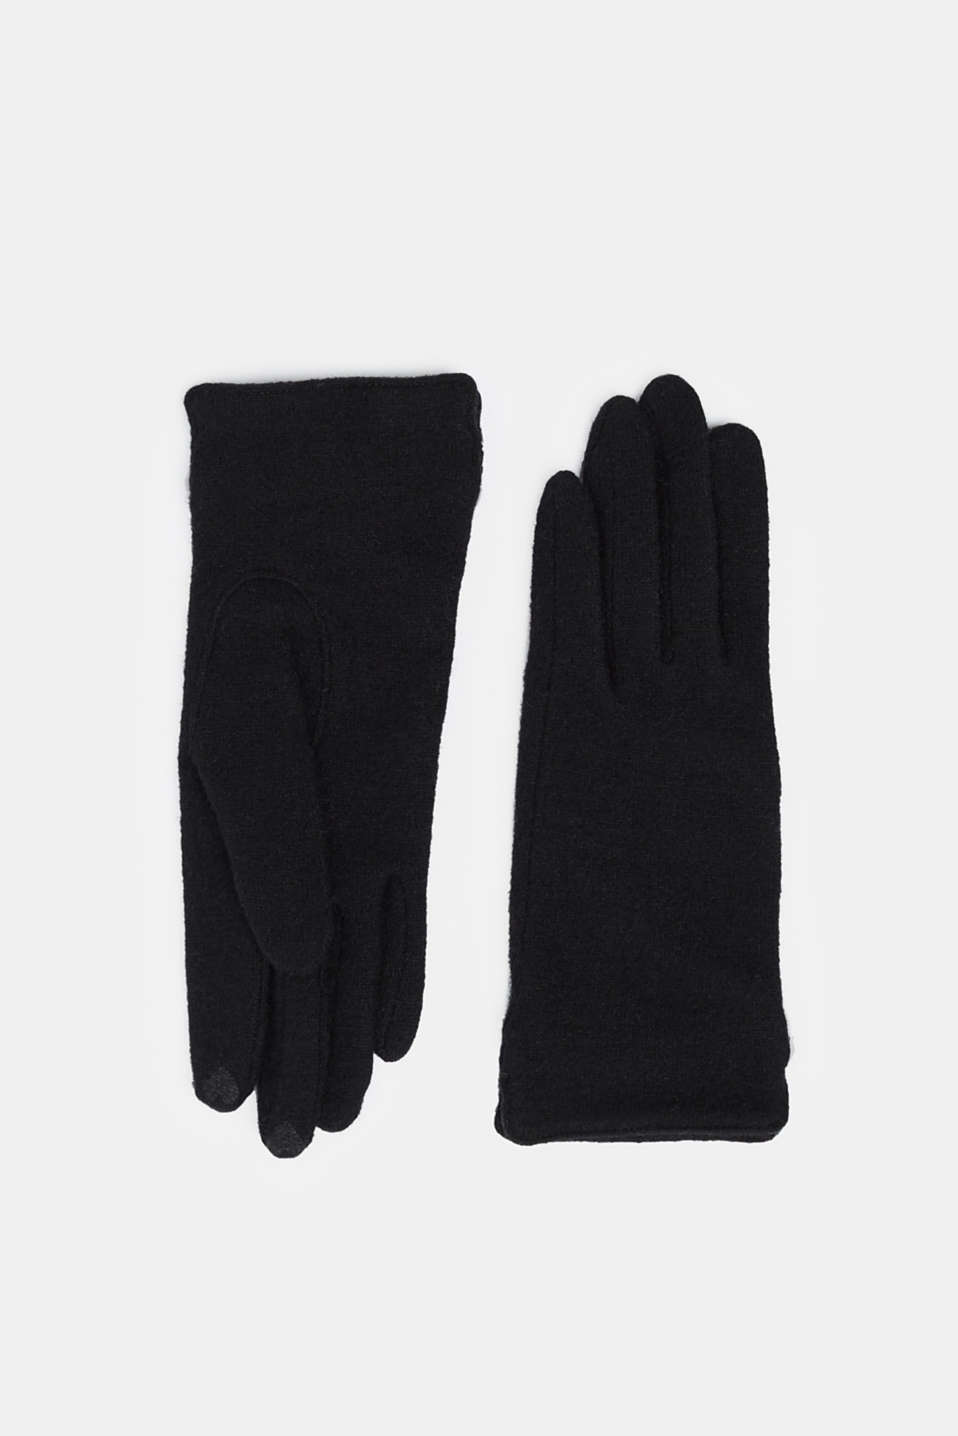 Esprit - Made of blended wool: Touchscreen gloves